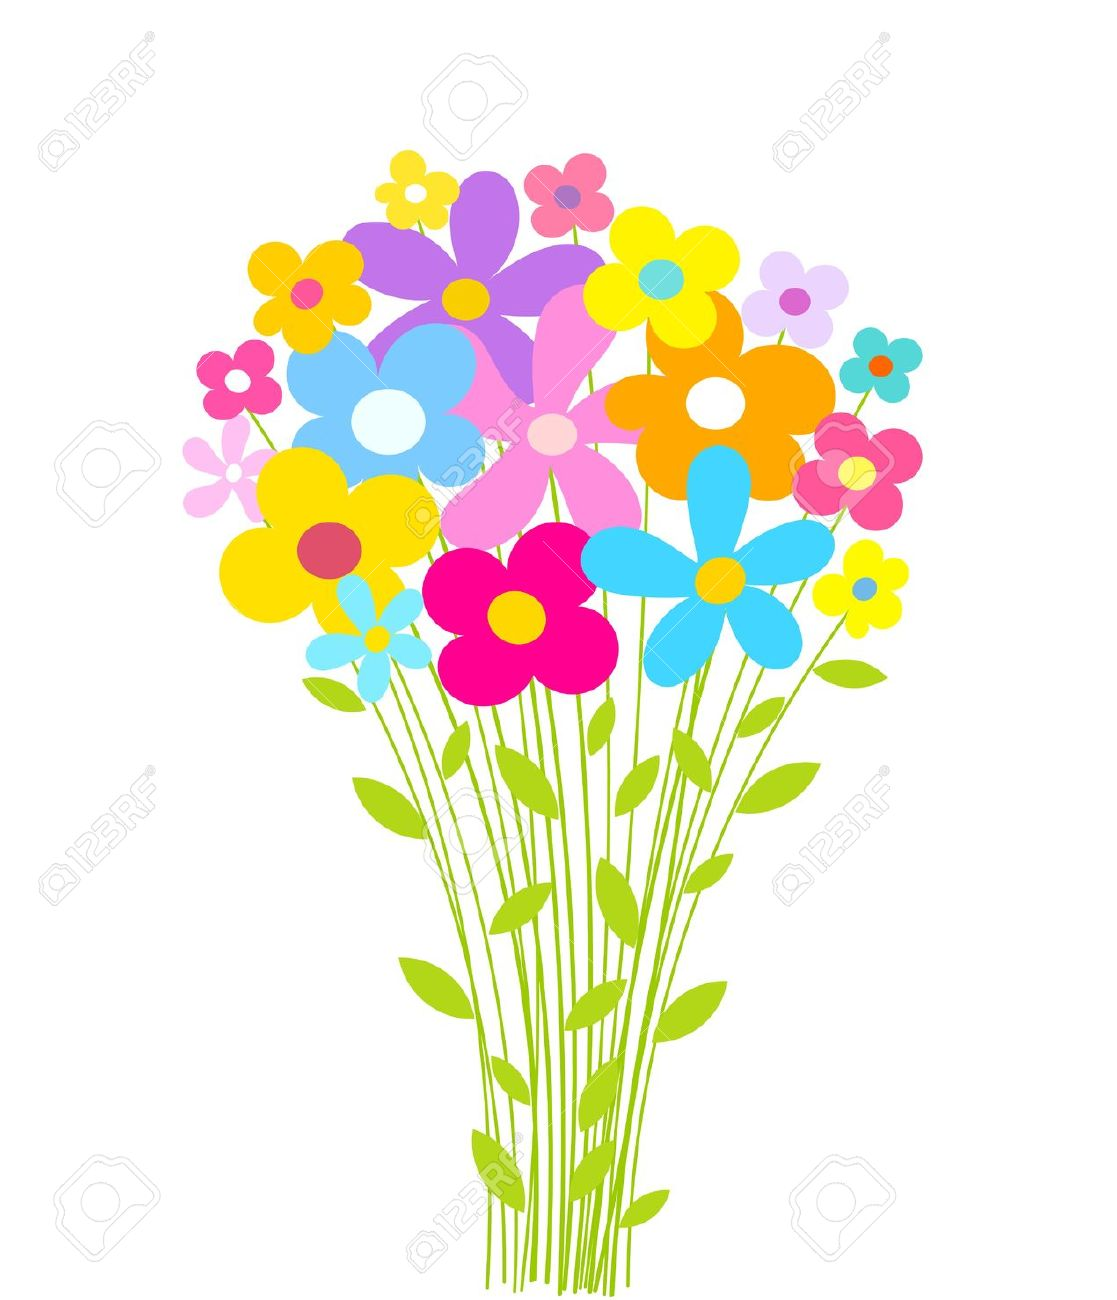 Cartoon bunch of flowers - ClipartFest jpg free